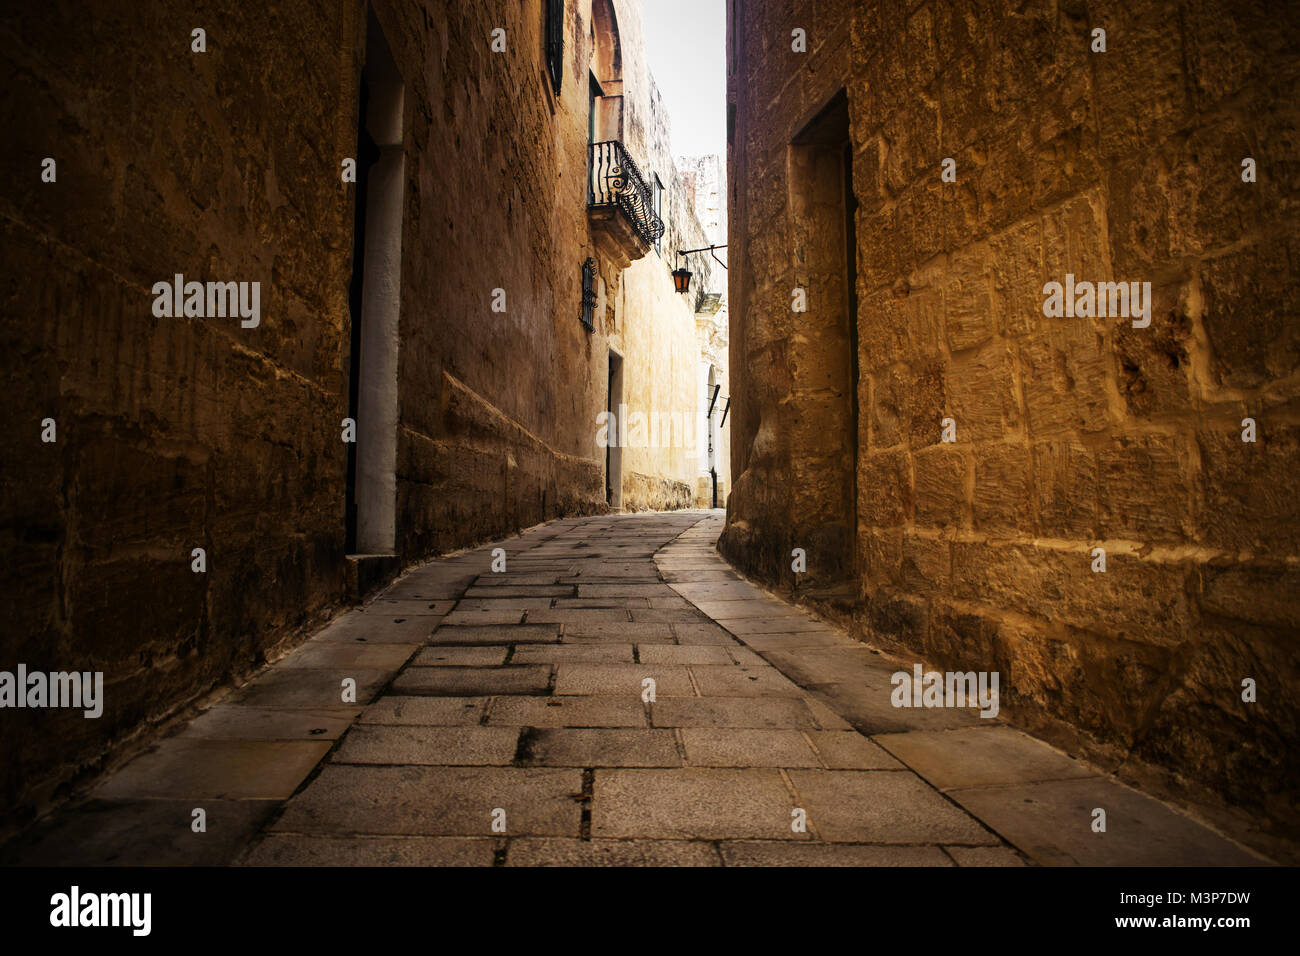 A typical narrow and historical road inlcuding cobblestone walls in Mdina, Malta. - Stock Image